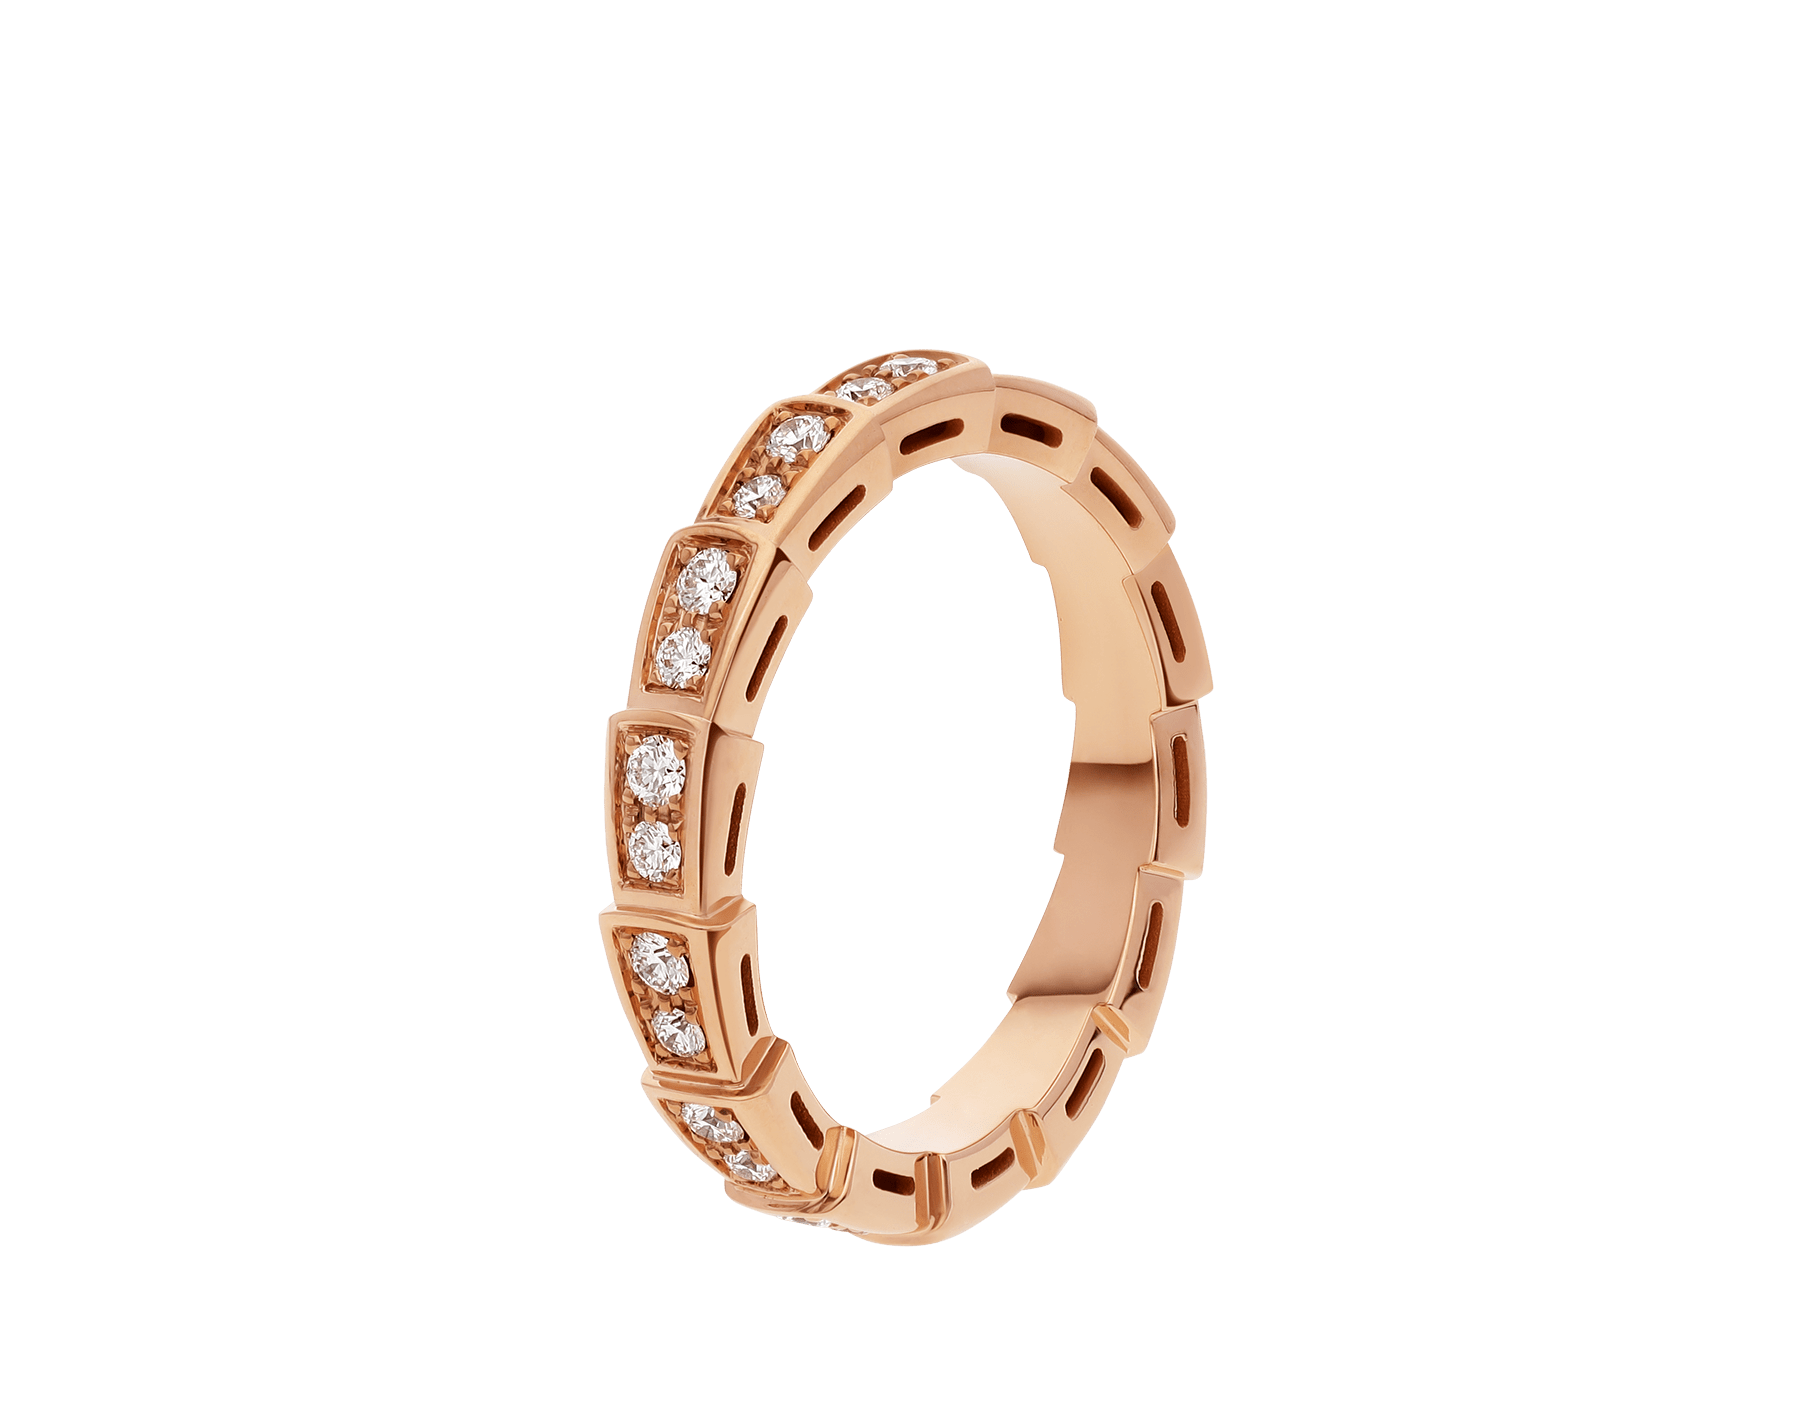 Serpenti Viper wedding band in 18 kt rose gold, set with full pavé diamonds. AN856980 image 1